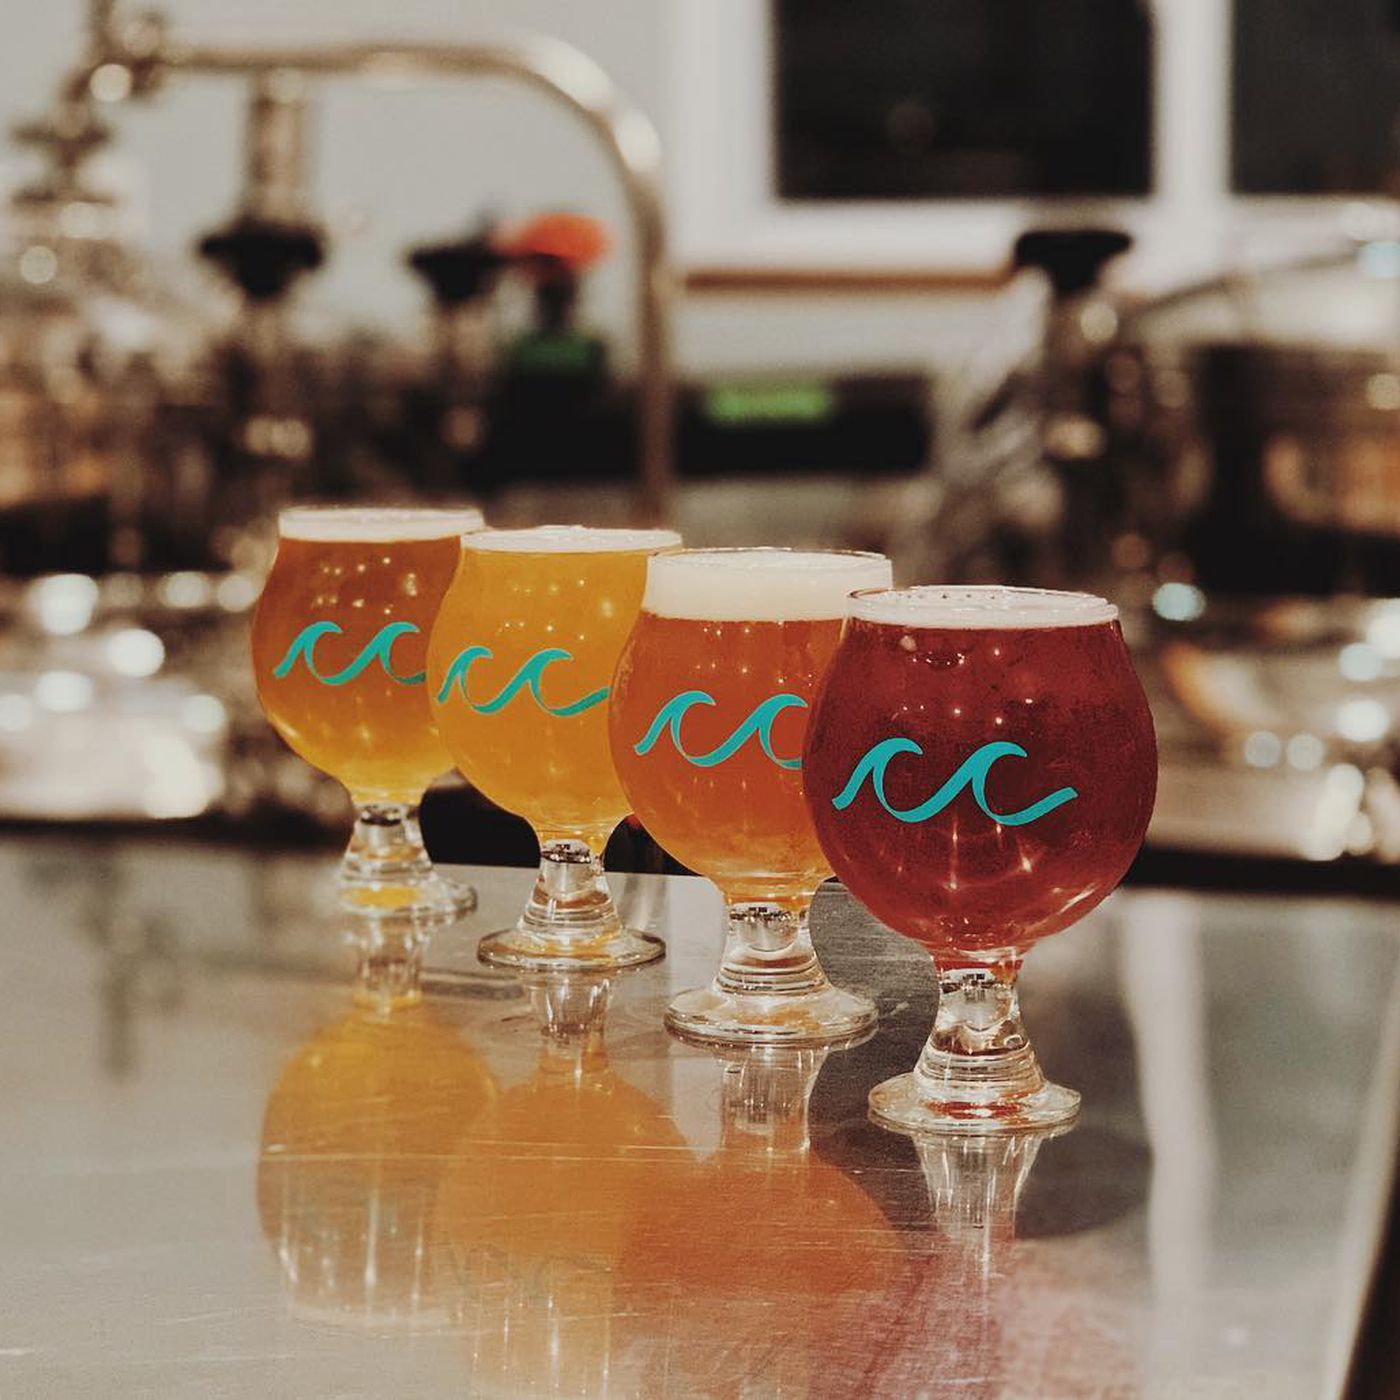 Gluten Free Cold Crash Brewing Opens This Sunday In West Seattle